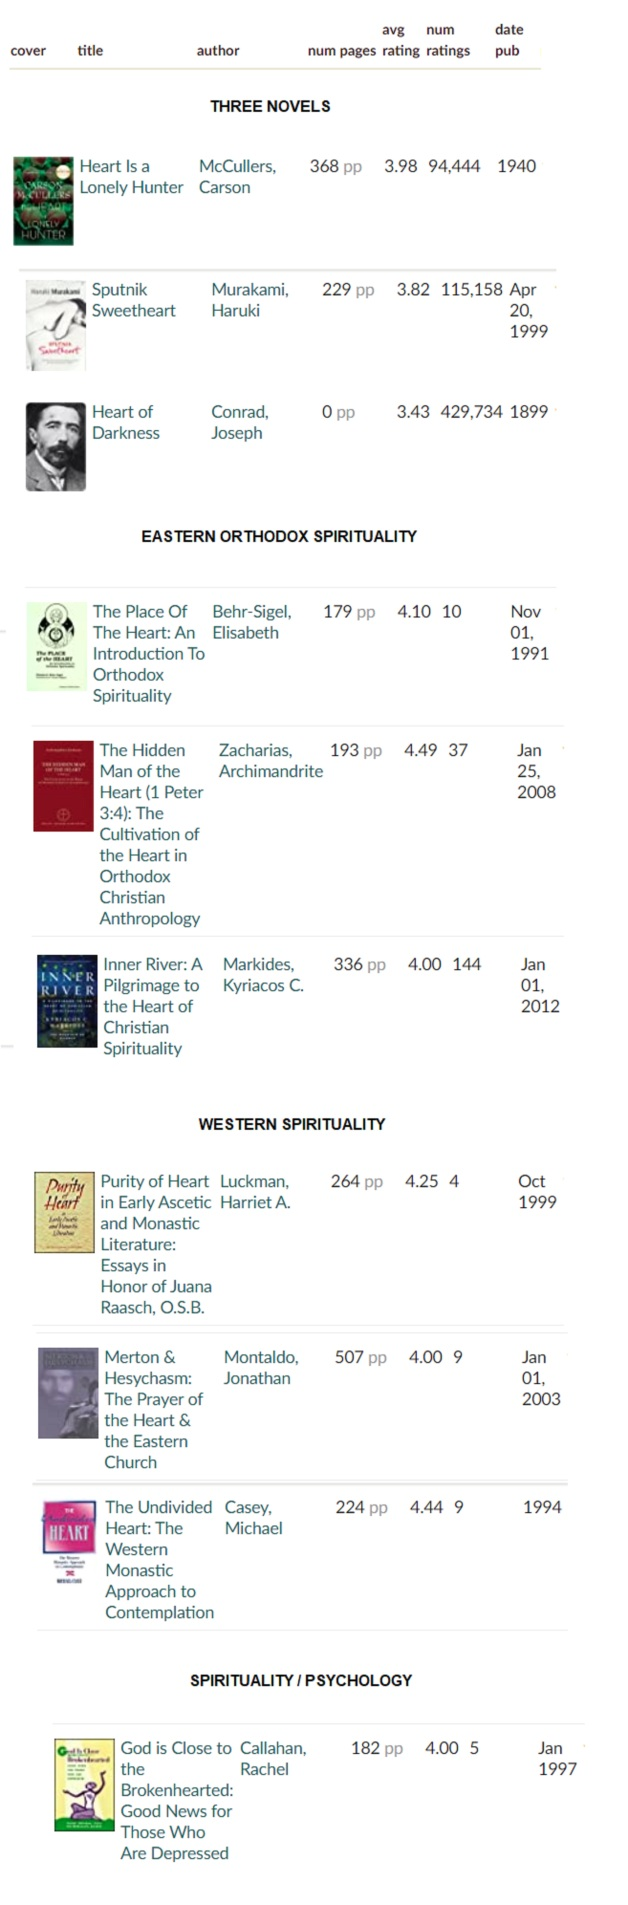 Top ten books with heart in the title